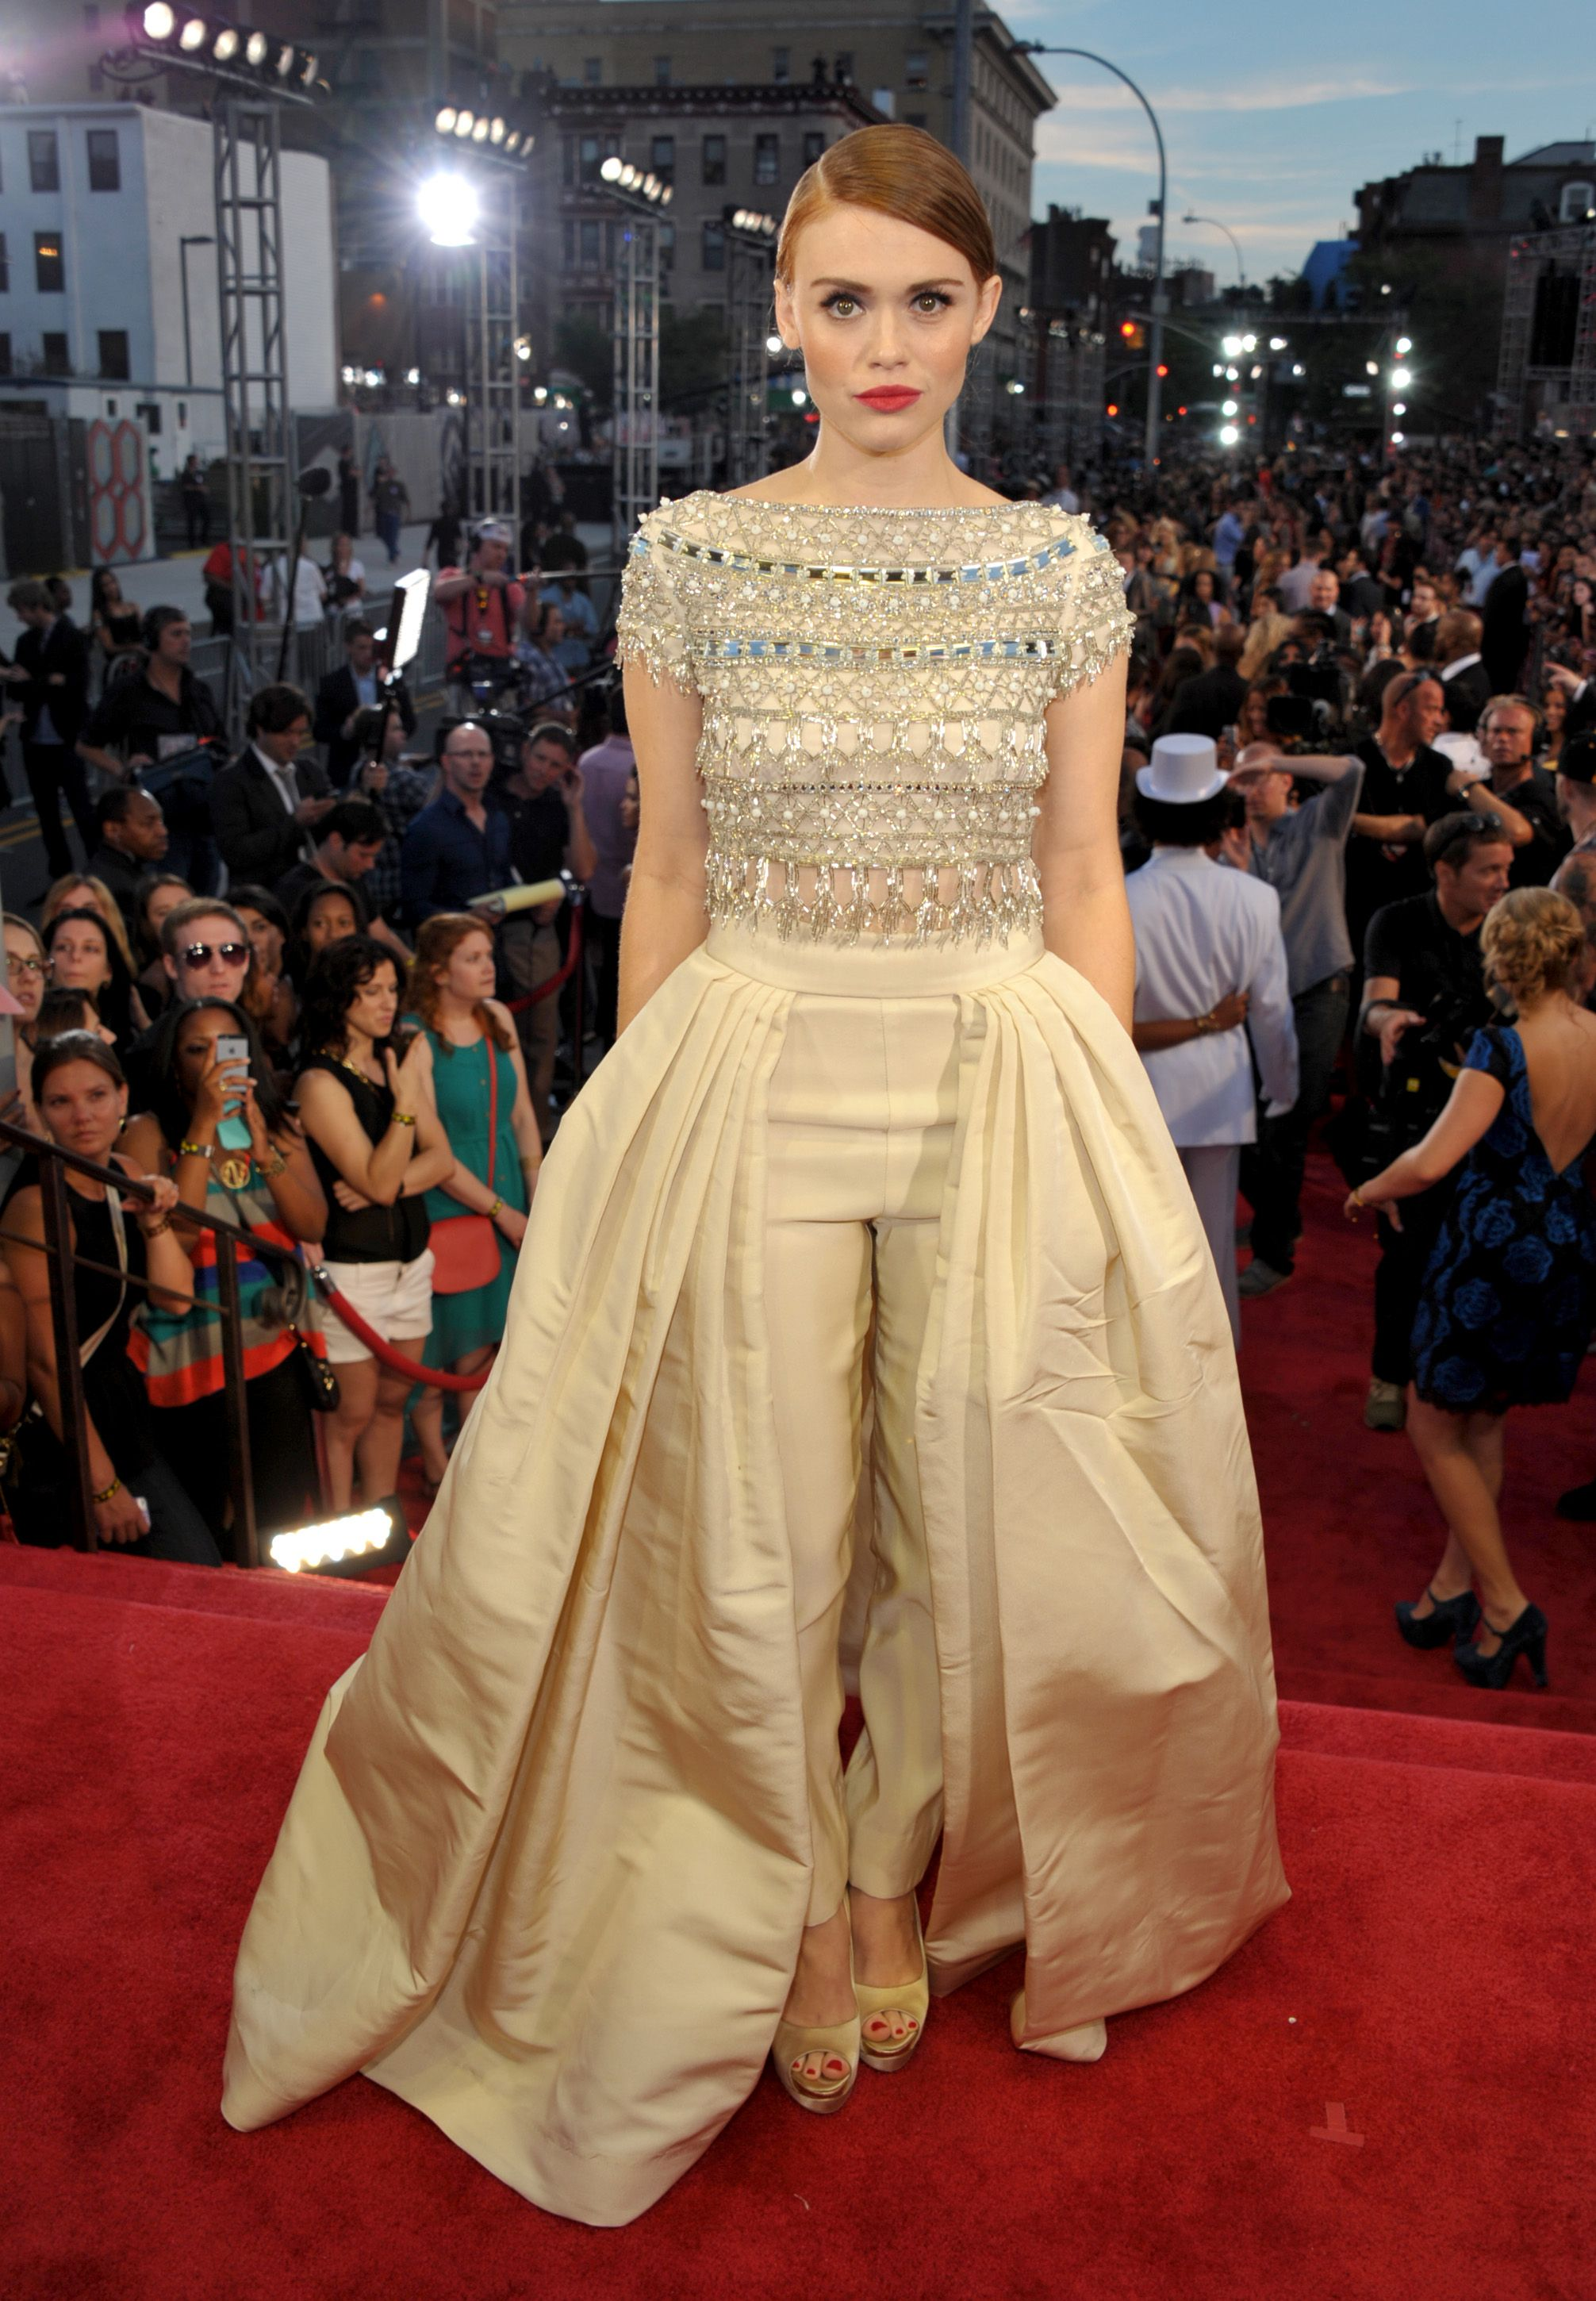 """Fashion hits and misses: The 2013 MTV Video Music AwardsFor decades, designers have been trying to hybridize pants and dresses (no, we don't know why). The experiment continues with """"Teen Wolf"""" starlet Holland Roden, who dons a delicate, champagne-hued Naeem Khan ballgown-trouser combo topped with a sophisticated beaded bodice. Vote on her look, then see who else modeled pants ..."""